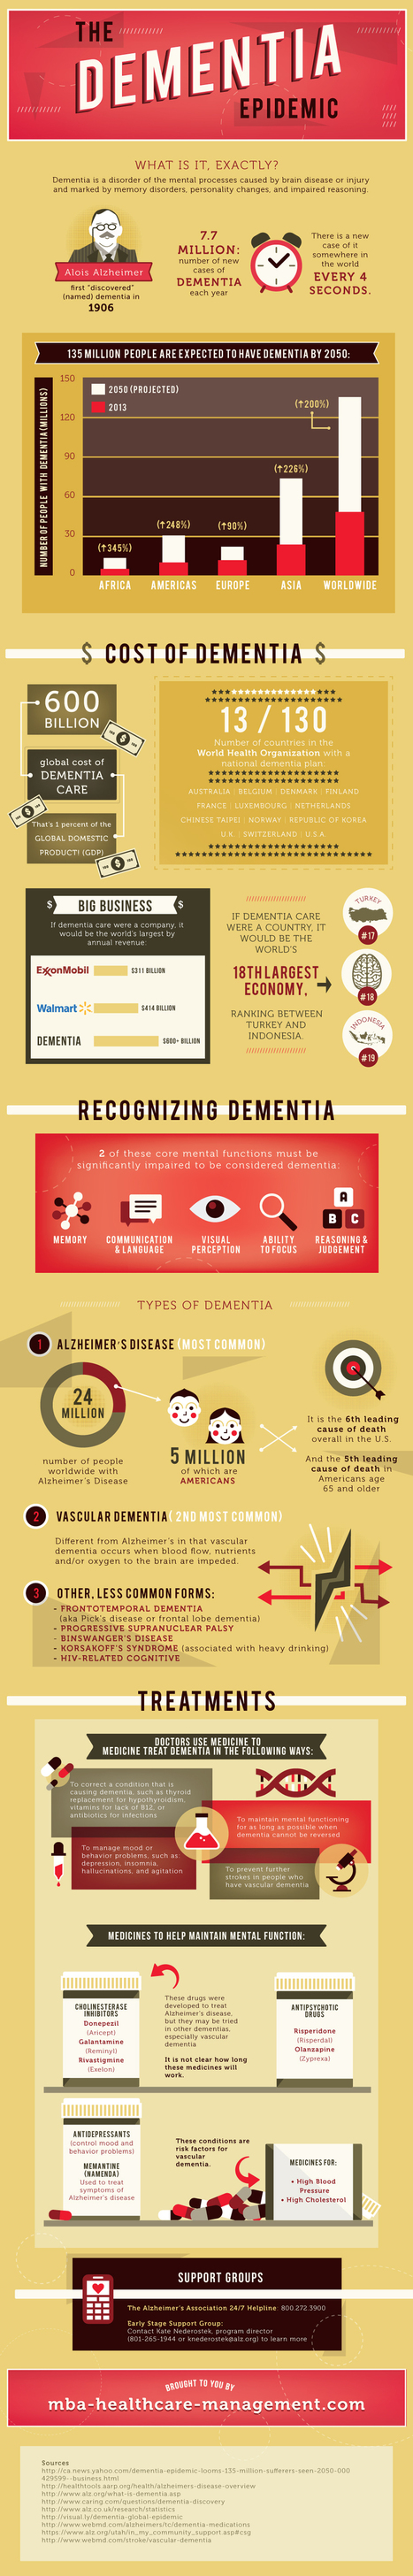 The Dementia Epidemic at a Glance and The Future - Alzheimers Support | Alzheimer's Support | Scoop.it